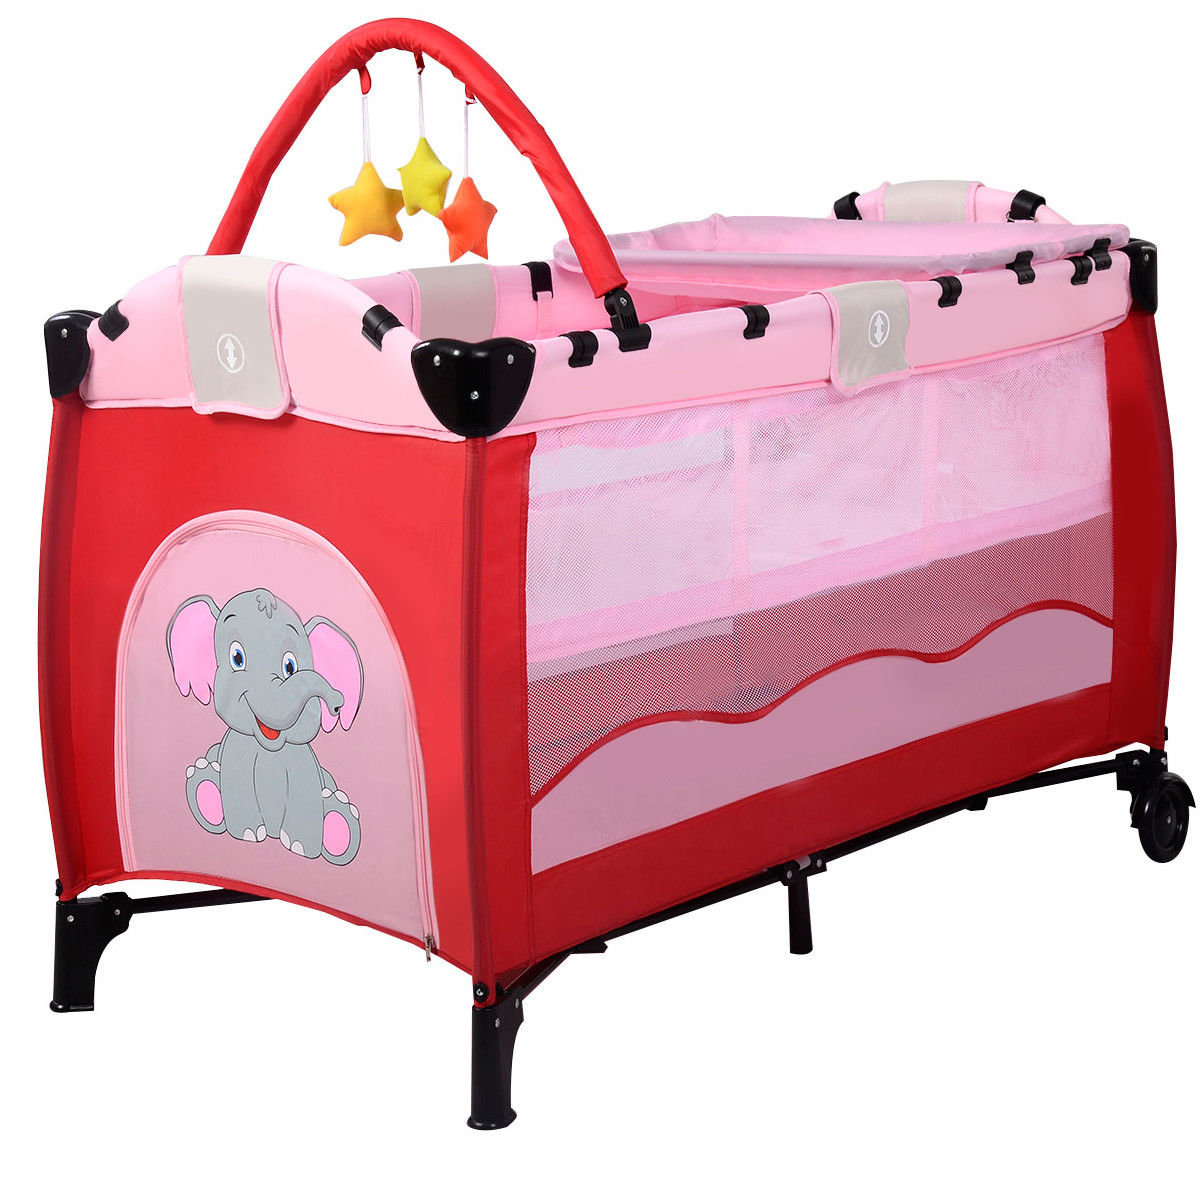 New Pink Baby Crib Playpen Playard Pack Travel Infant Bassinet Bed Foldable